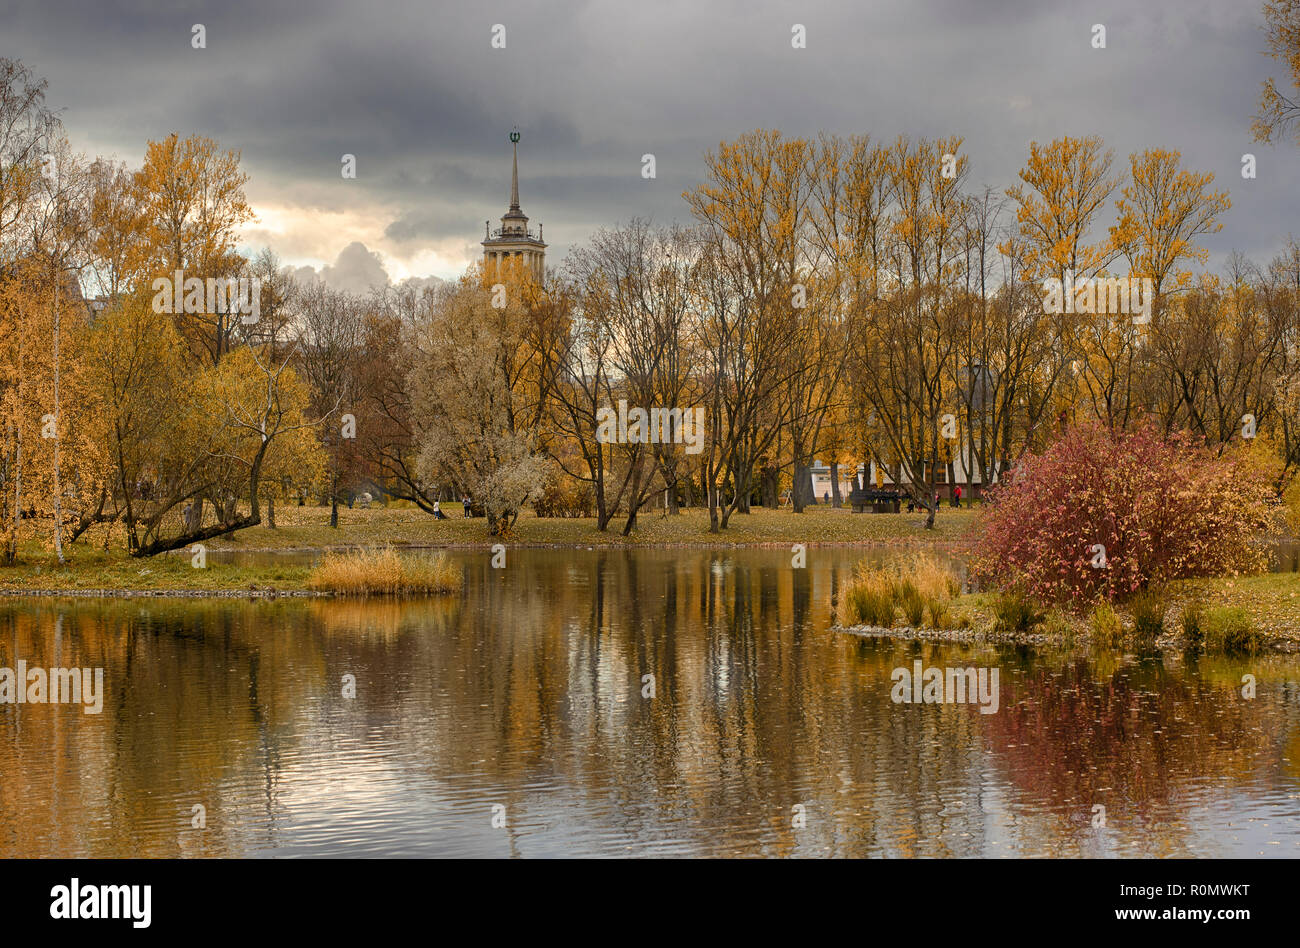 Autumn landscape in Victory Park and a house with a spire in the style of Stalinist Neoclassicism (Saint-Petersburg) - Stock Image